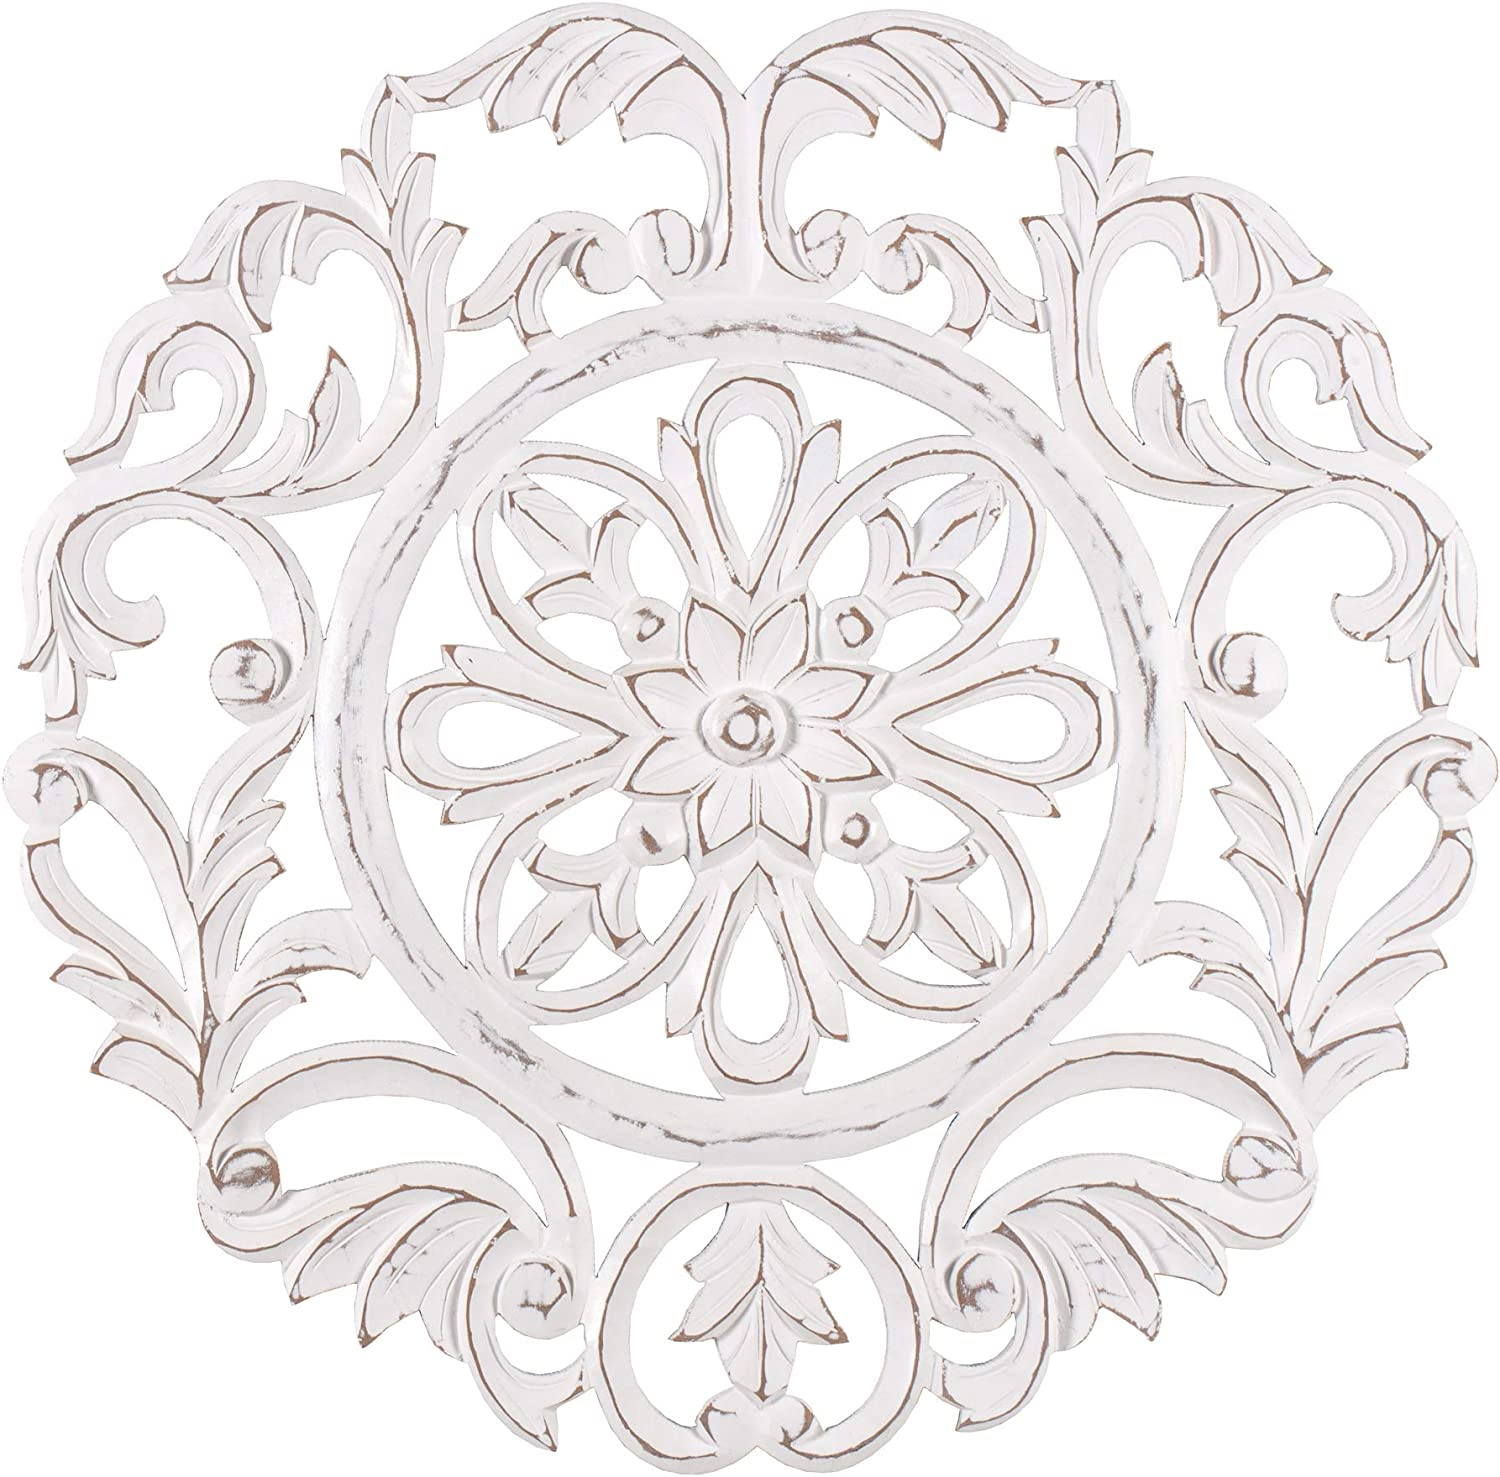 MH London Medallion Wall Décor Art - Hand-Carved MDF Accent Contemporary Artwork - Rustic Shabby Chic Plaque for Living Room, Bedroom - 23.5